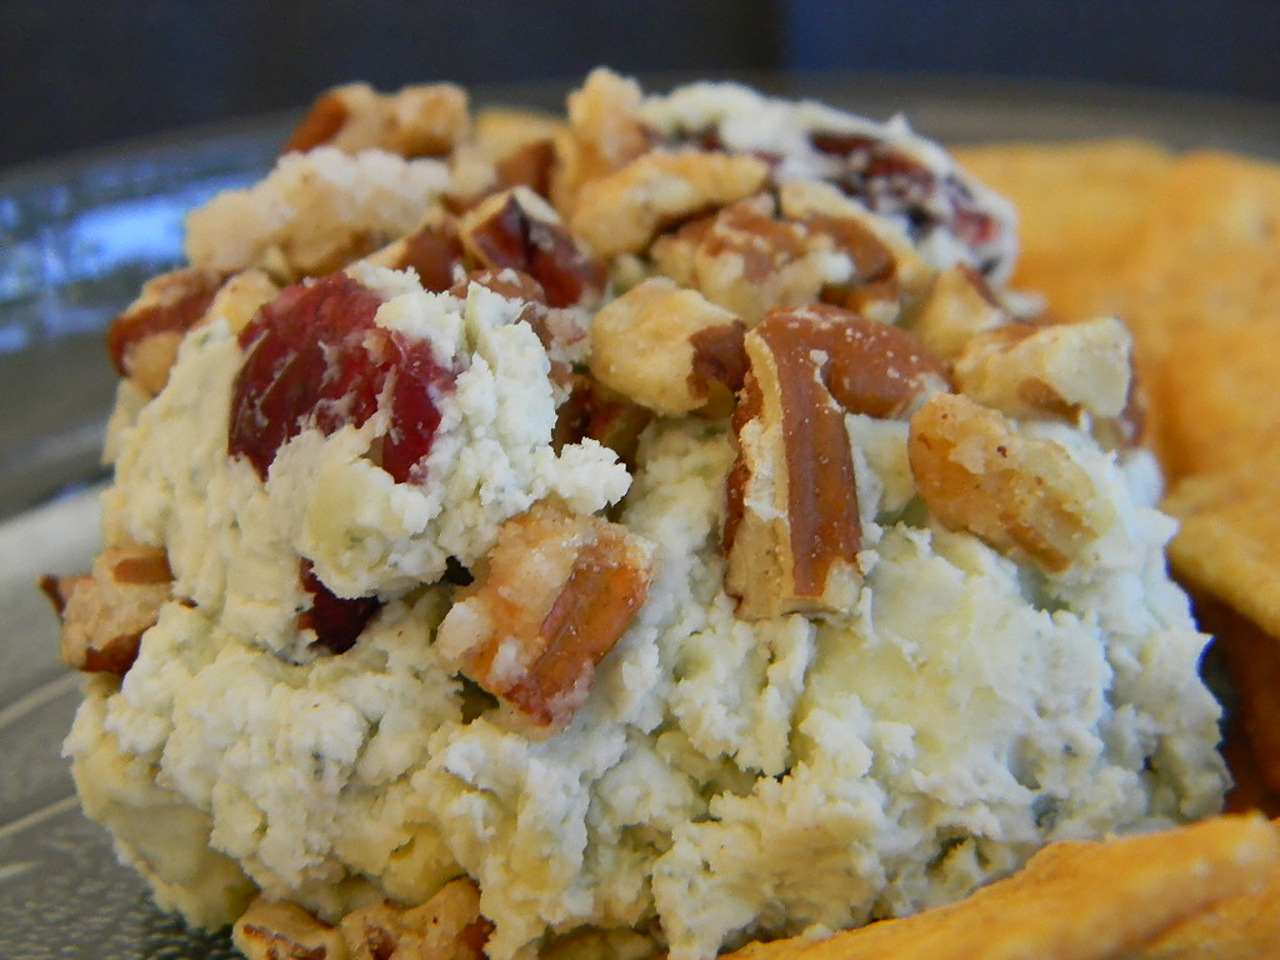 Blue Cheese, Sweet Pecan, and Cranberry Spread AllrecipesPhoto